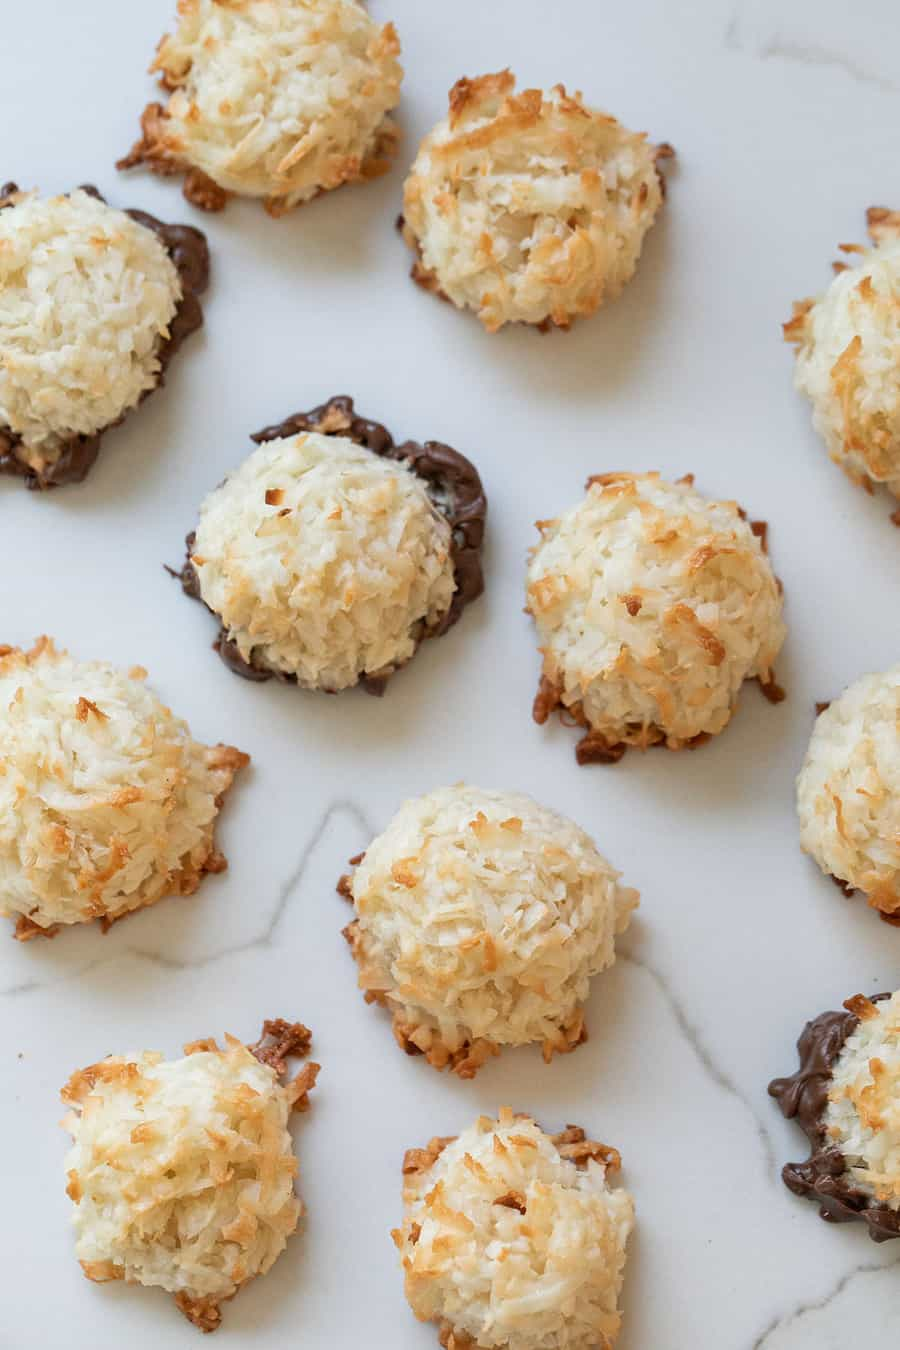 Coconut macaroons without sweetened condensed milk